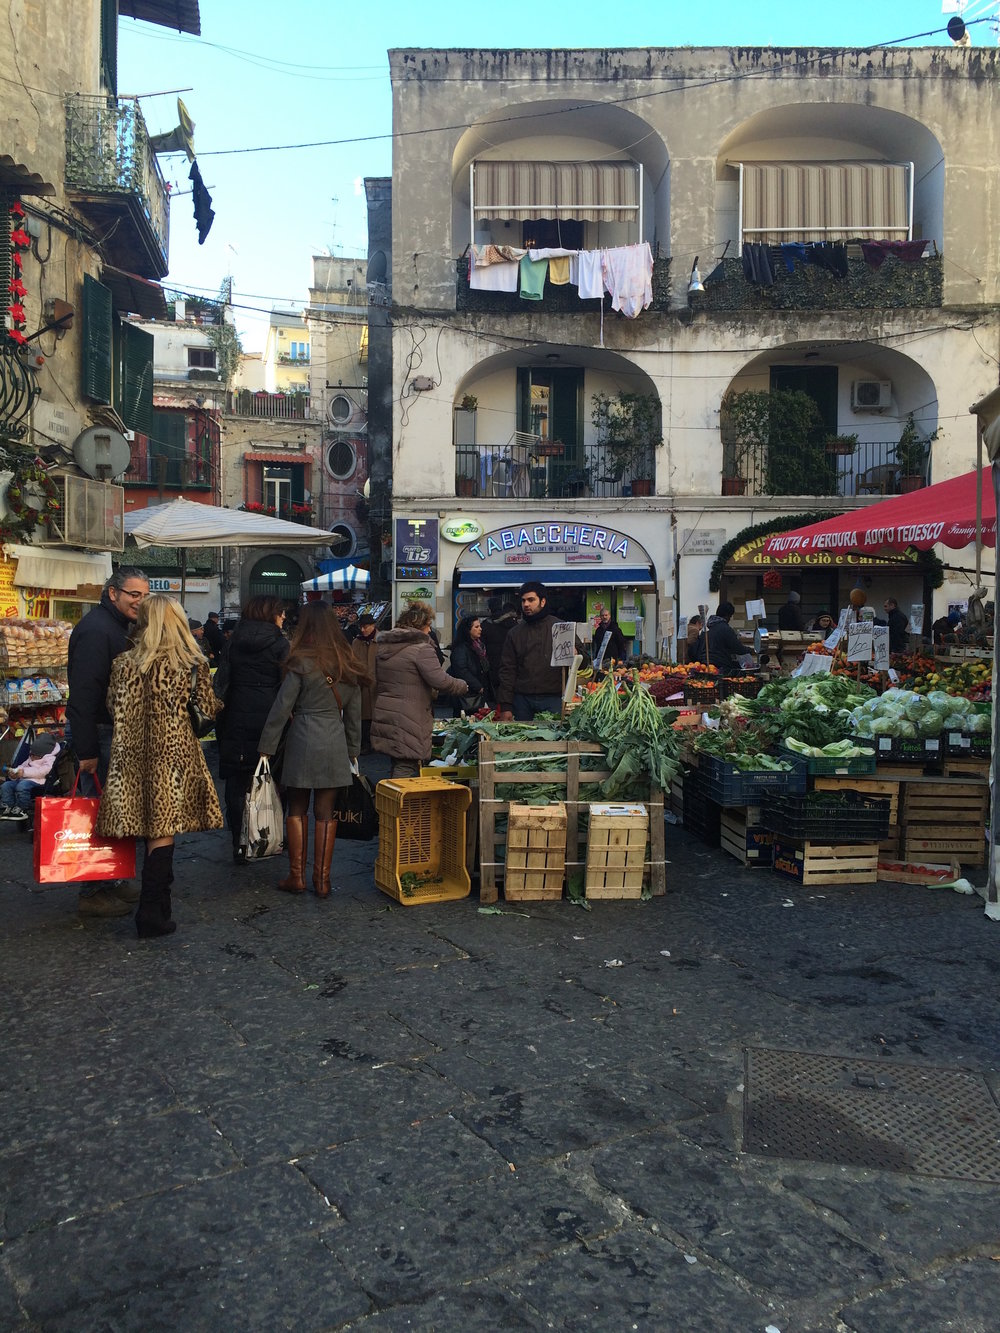 The Antignano Market, open daily for all of my shopping needs.